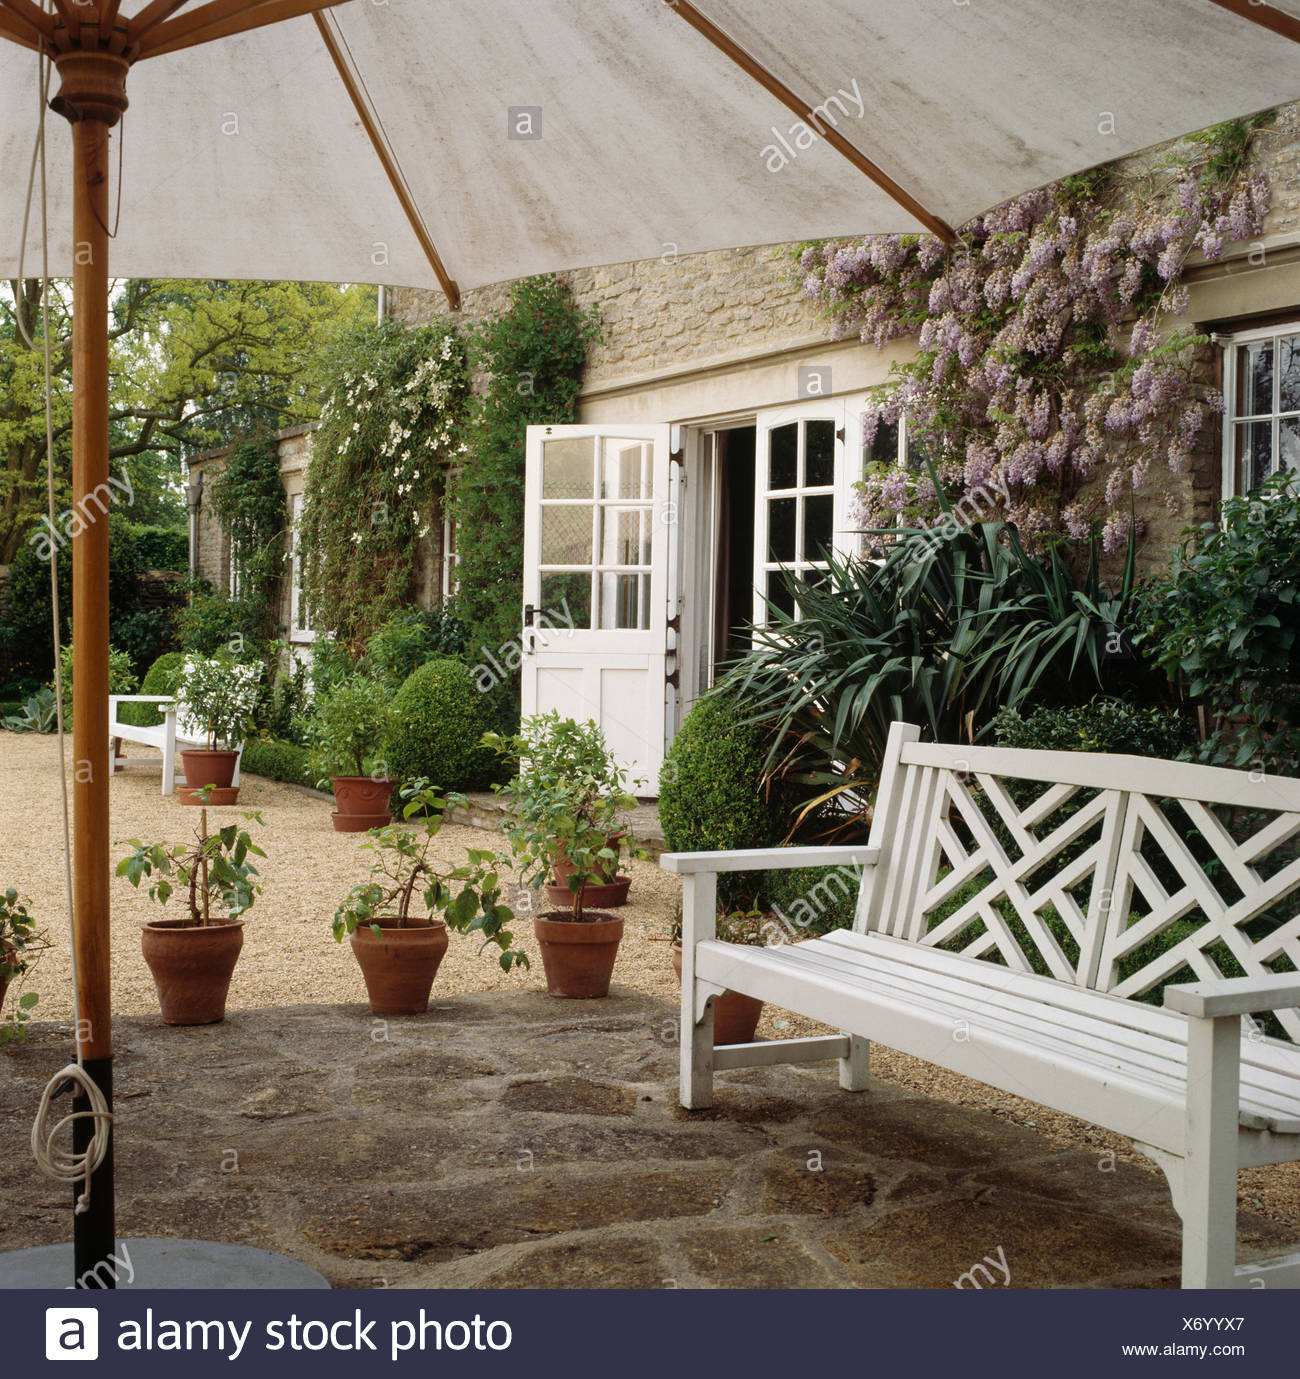 White Bench On Stone Paved Patio Below Large White Umbrella In Front